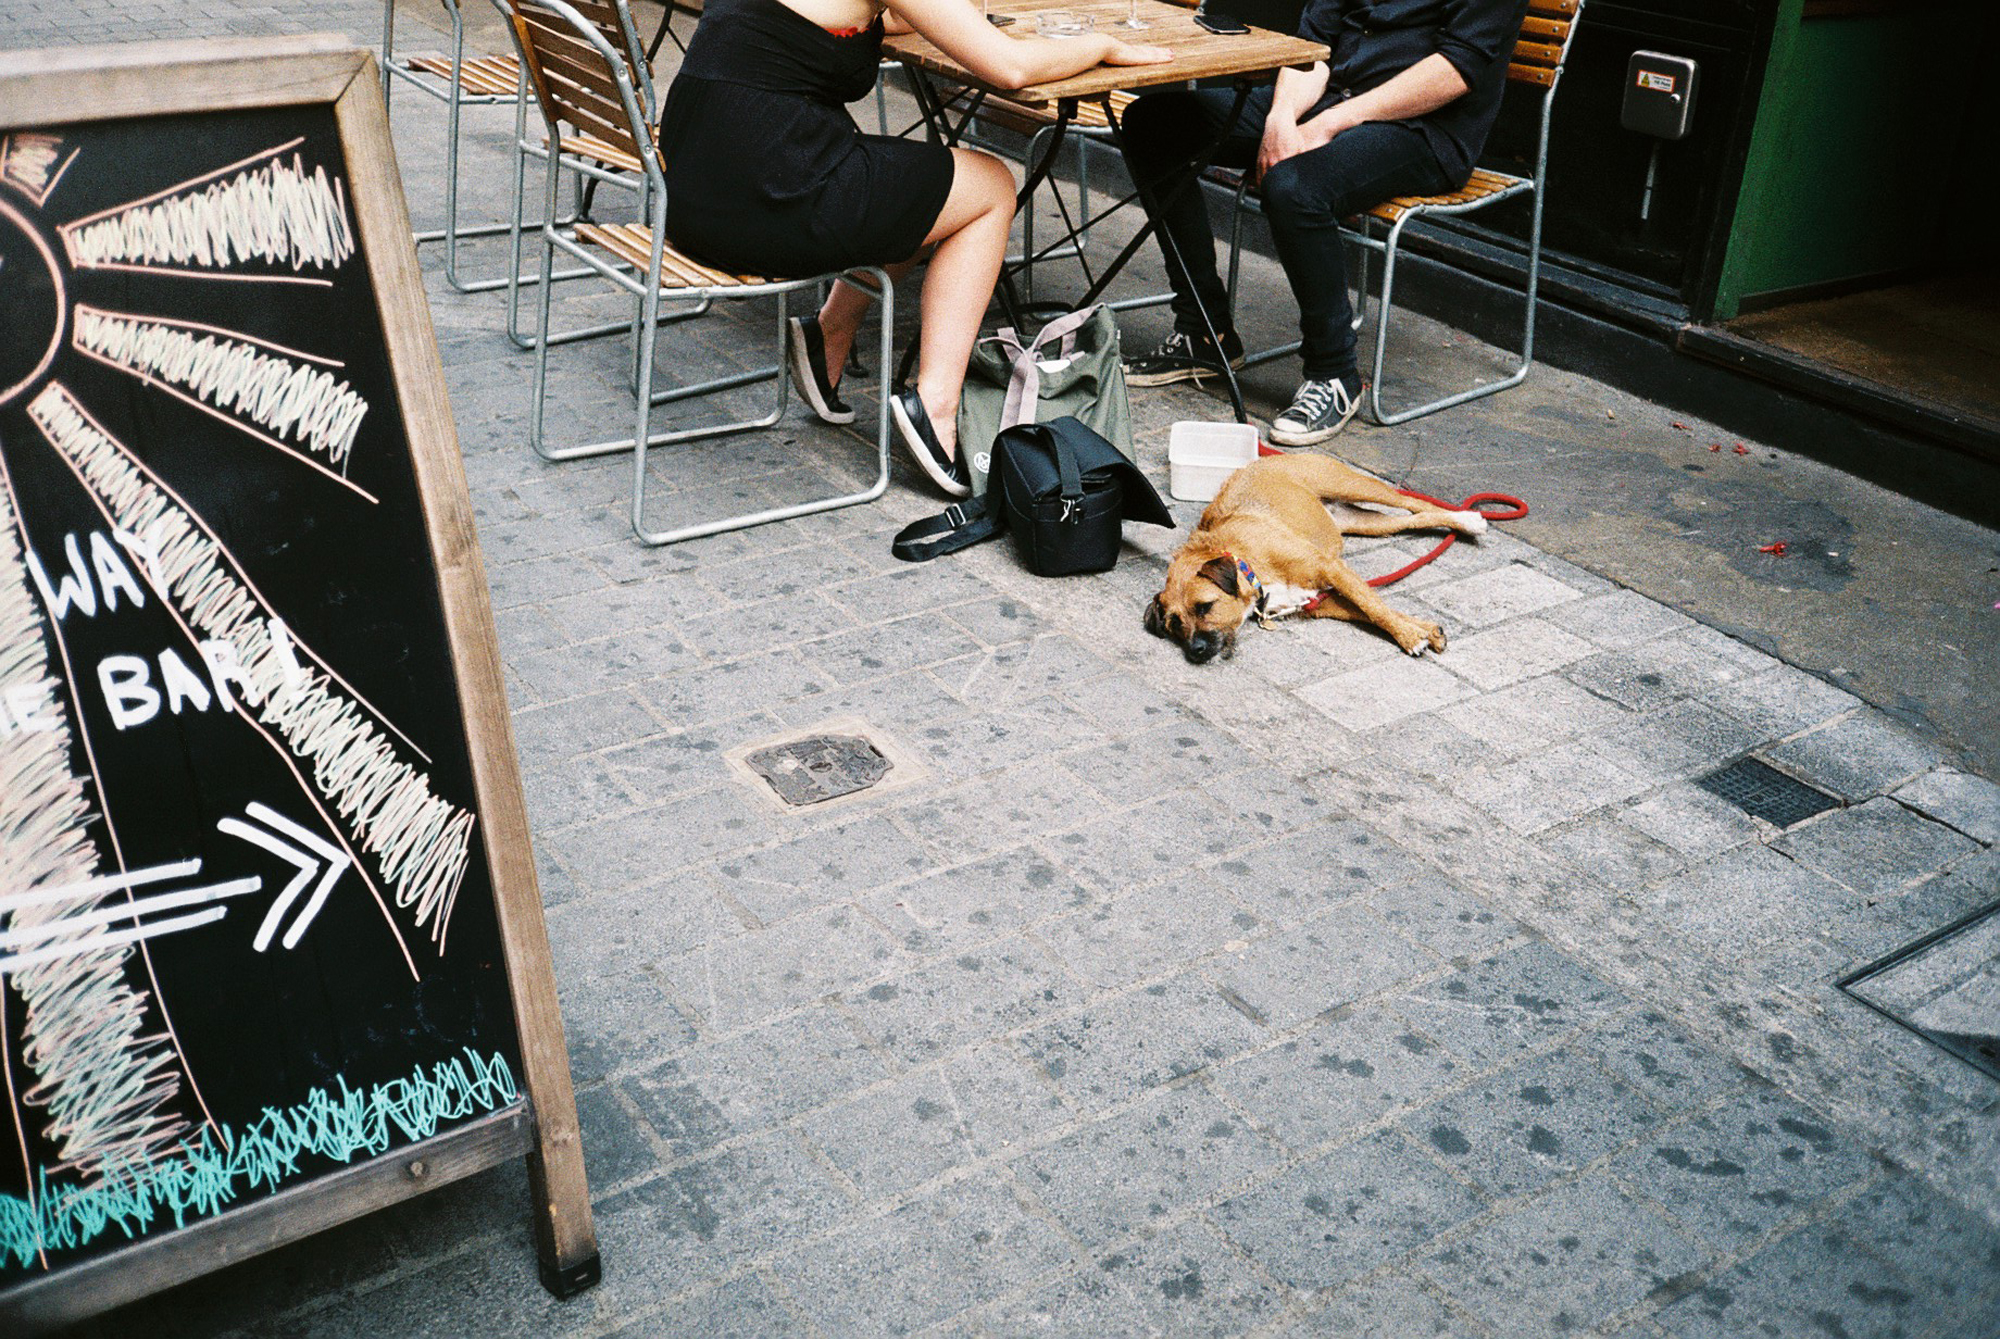 People dining with dog (Pic: Stephen Dowling)